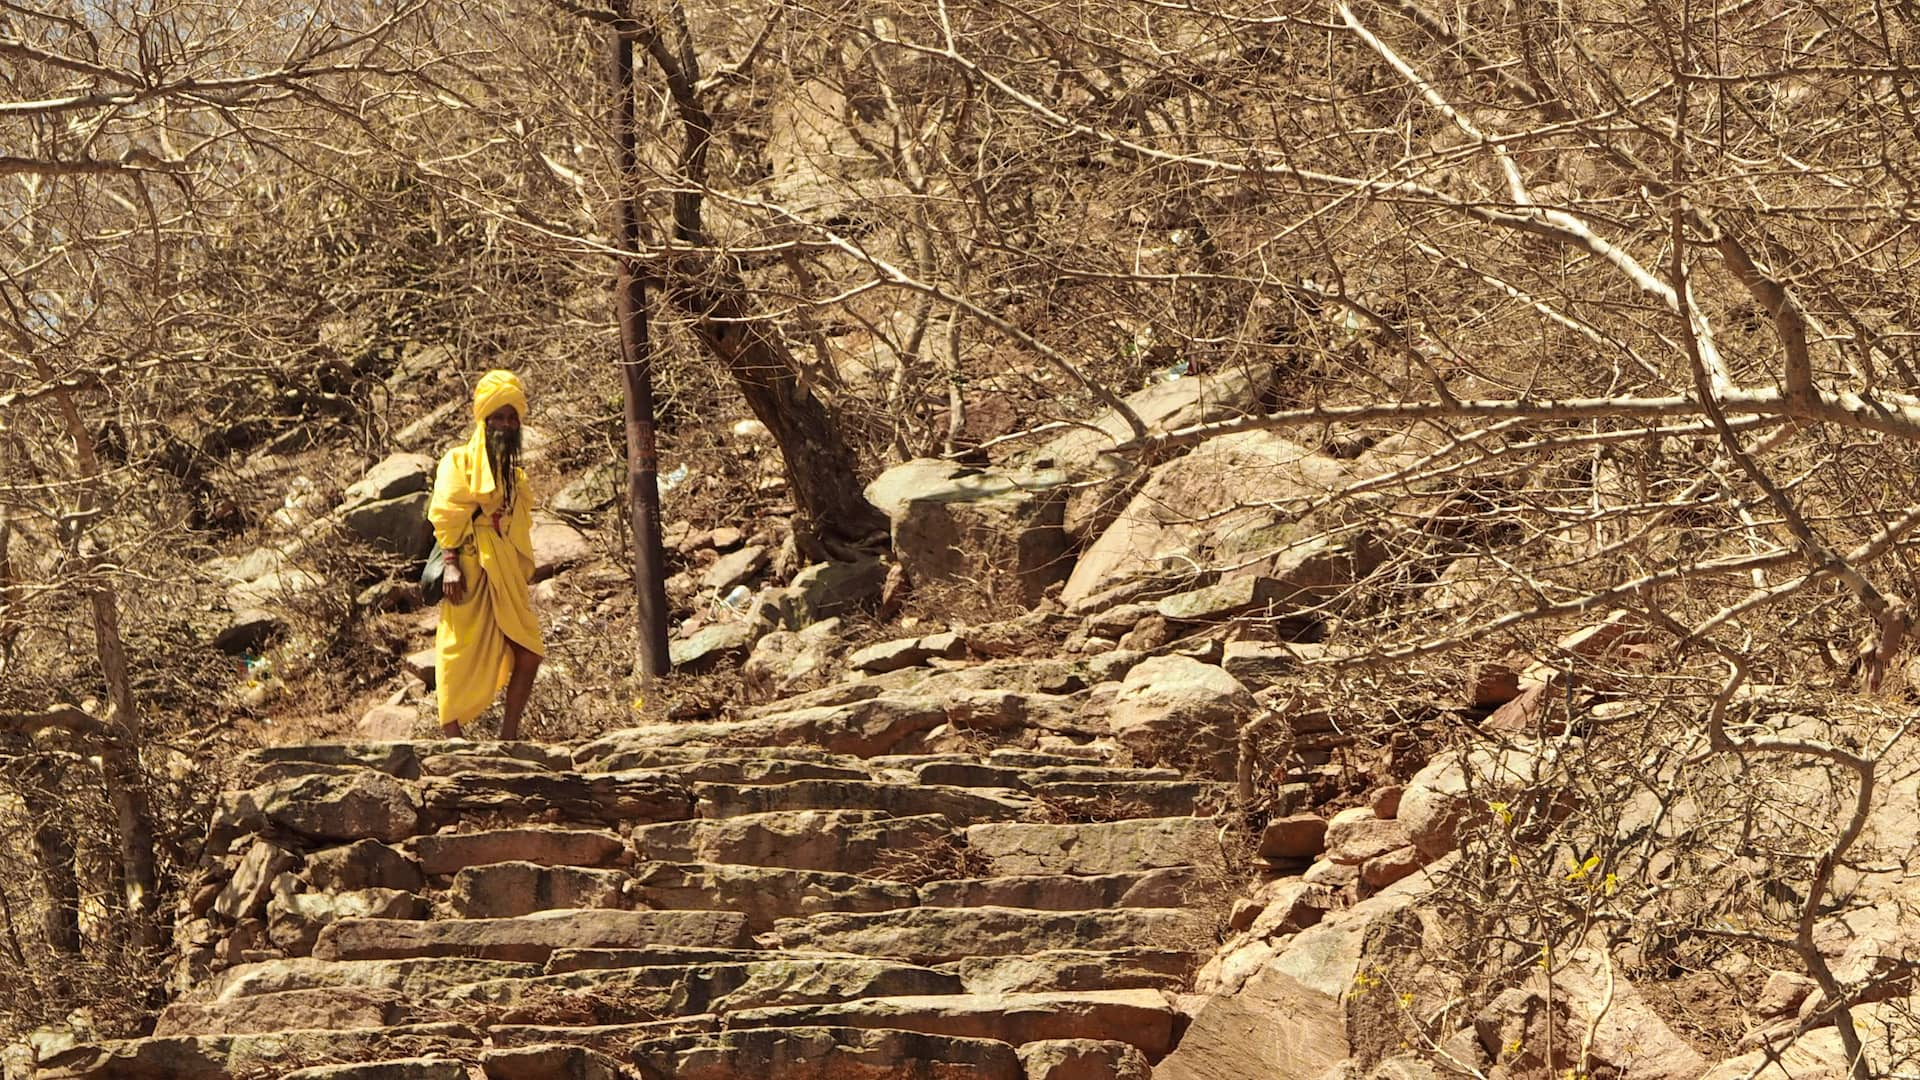 A man in yellow clothes stares at the camera